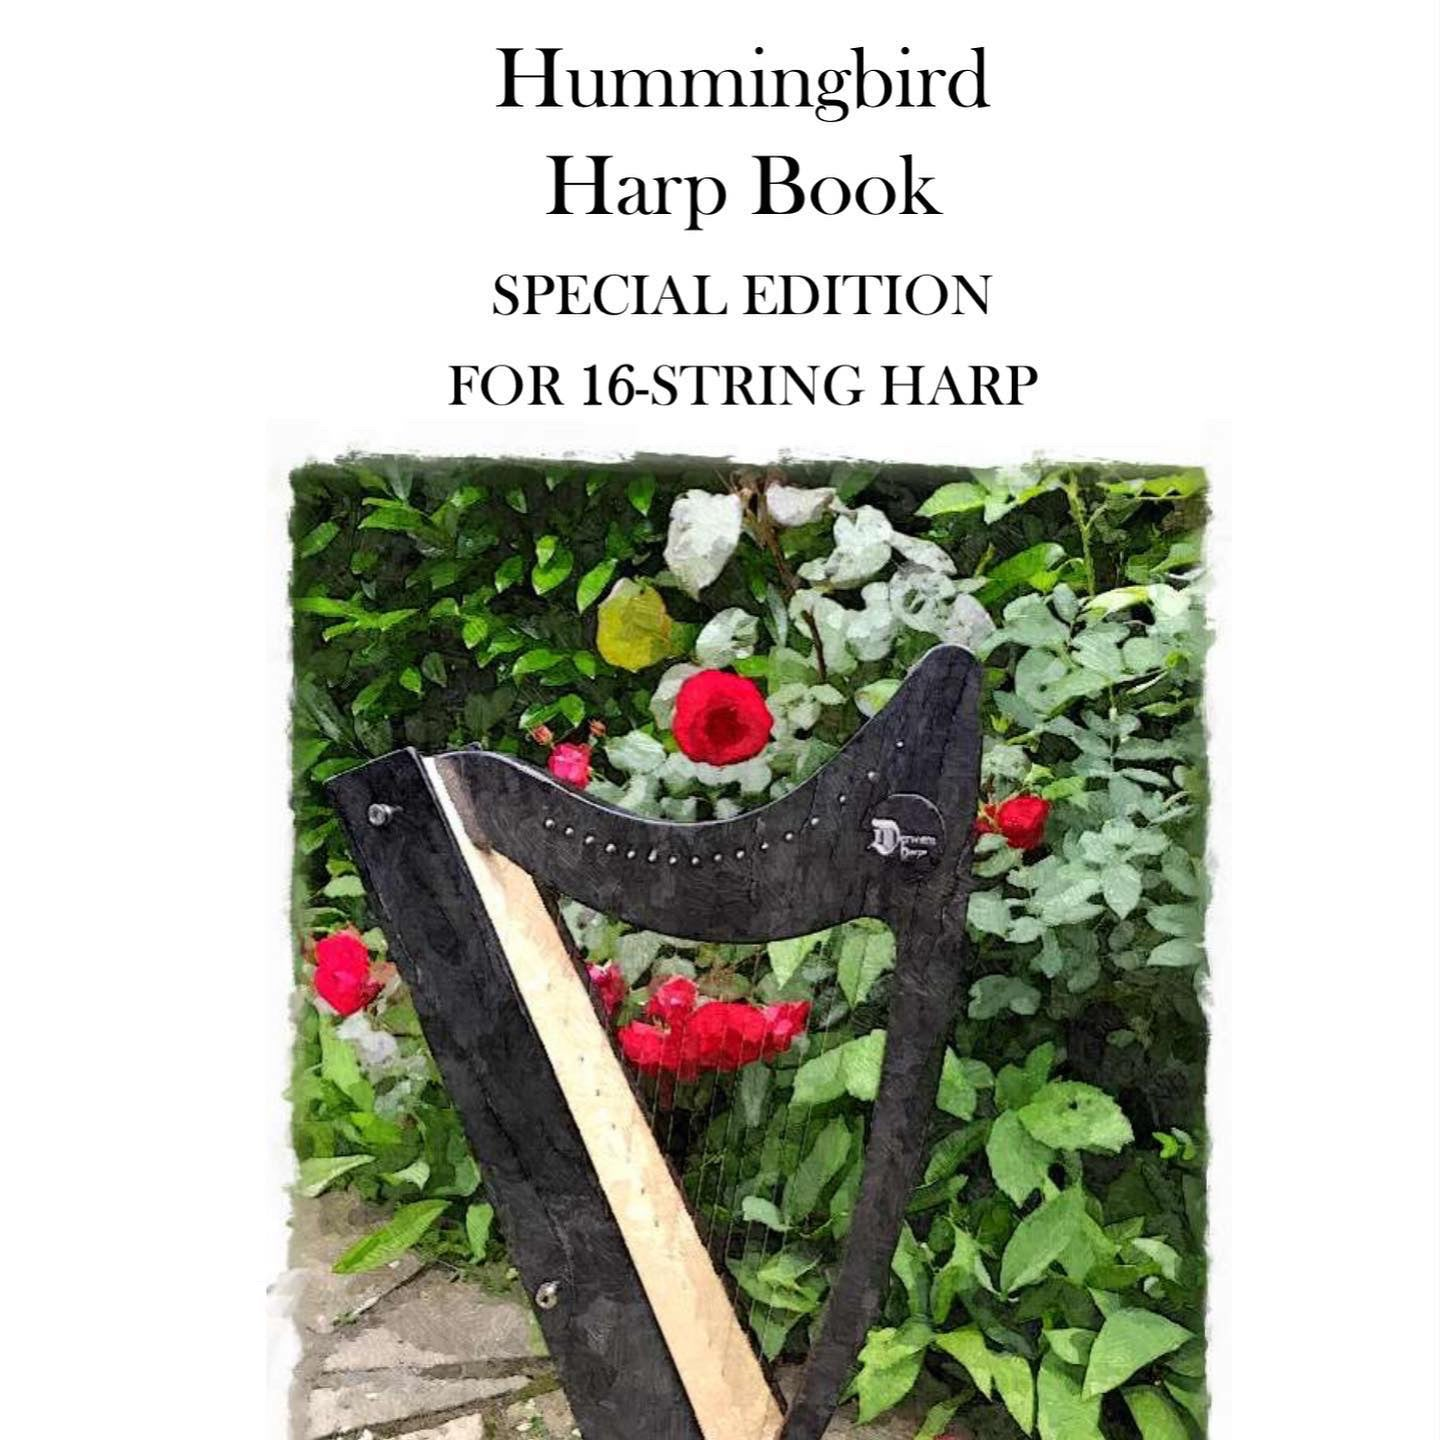 Special Edition Hummingbird Harp Book for the Discovery 16 by Kristine Warmhold